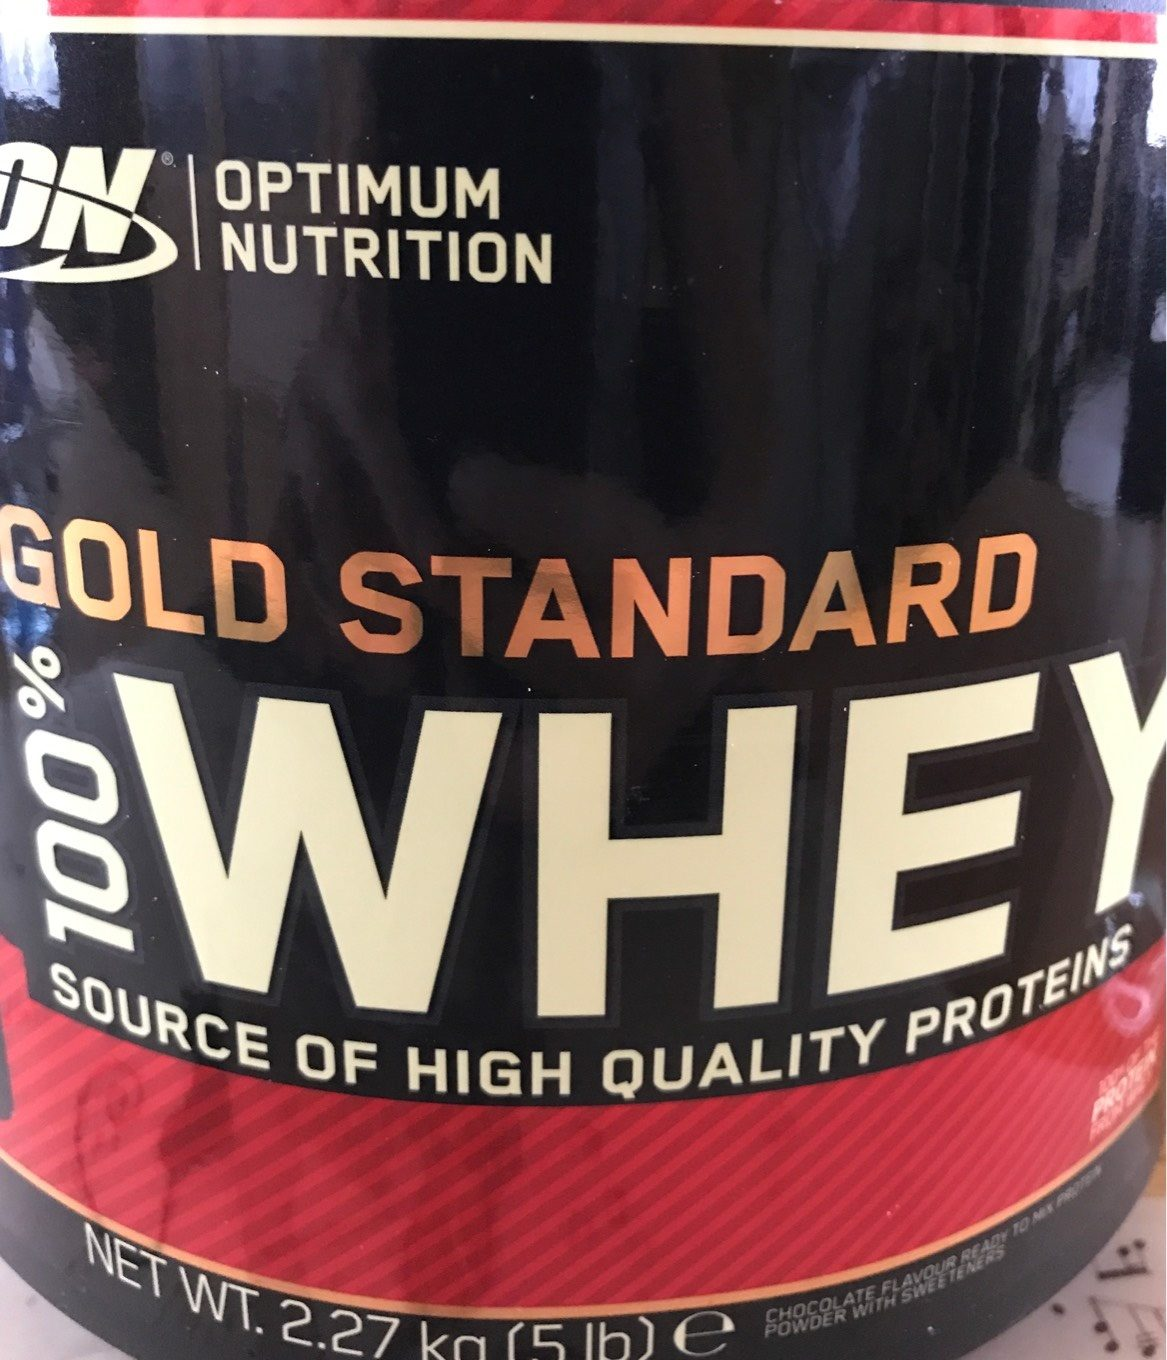 Gold Standard 100% Whey - Product